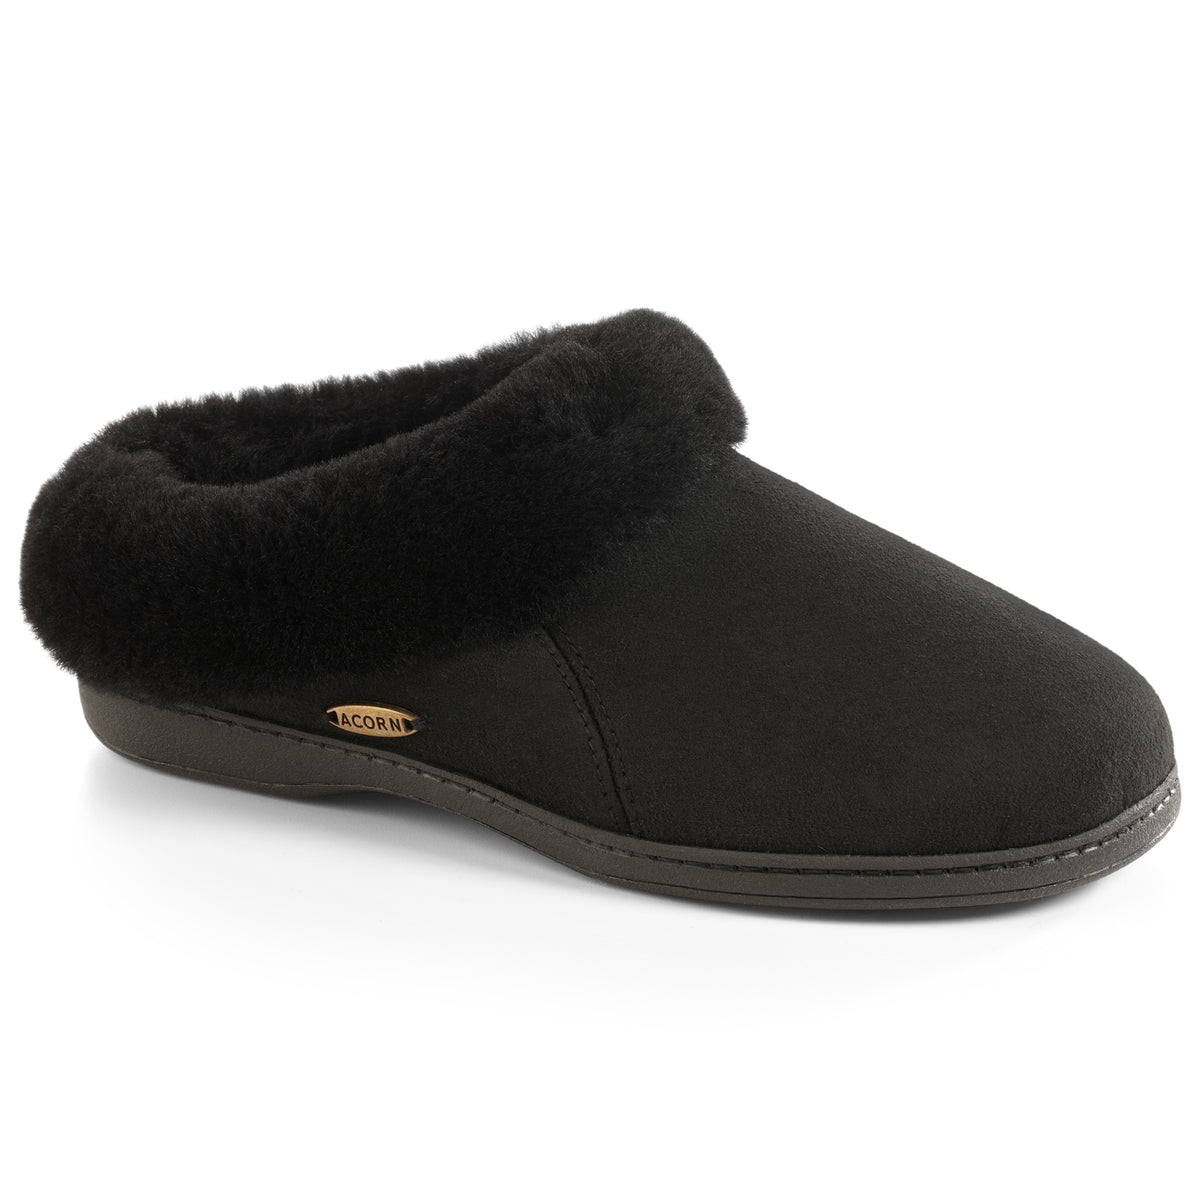 Acorn Women's Shearling Collar Slippers